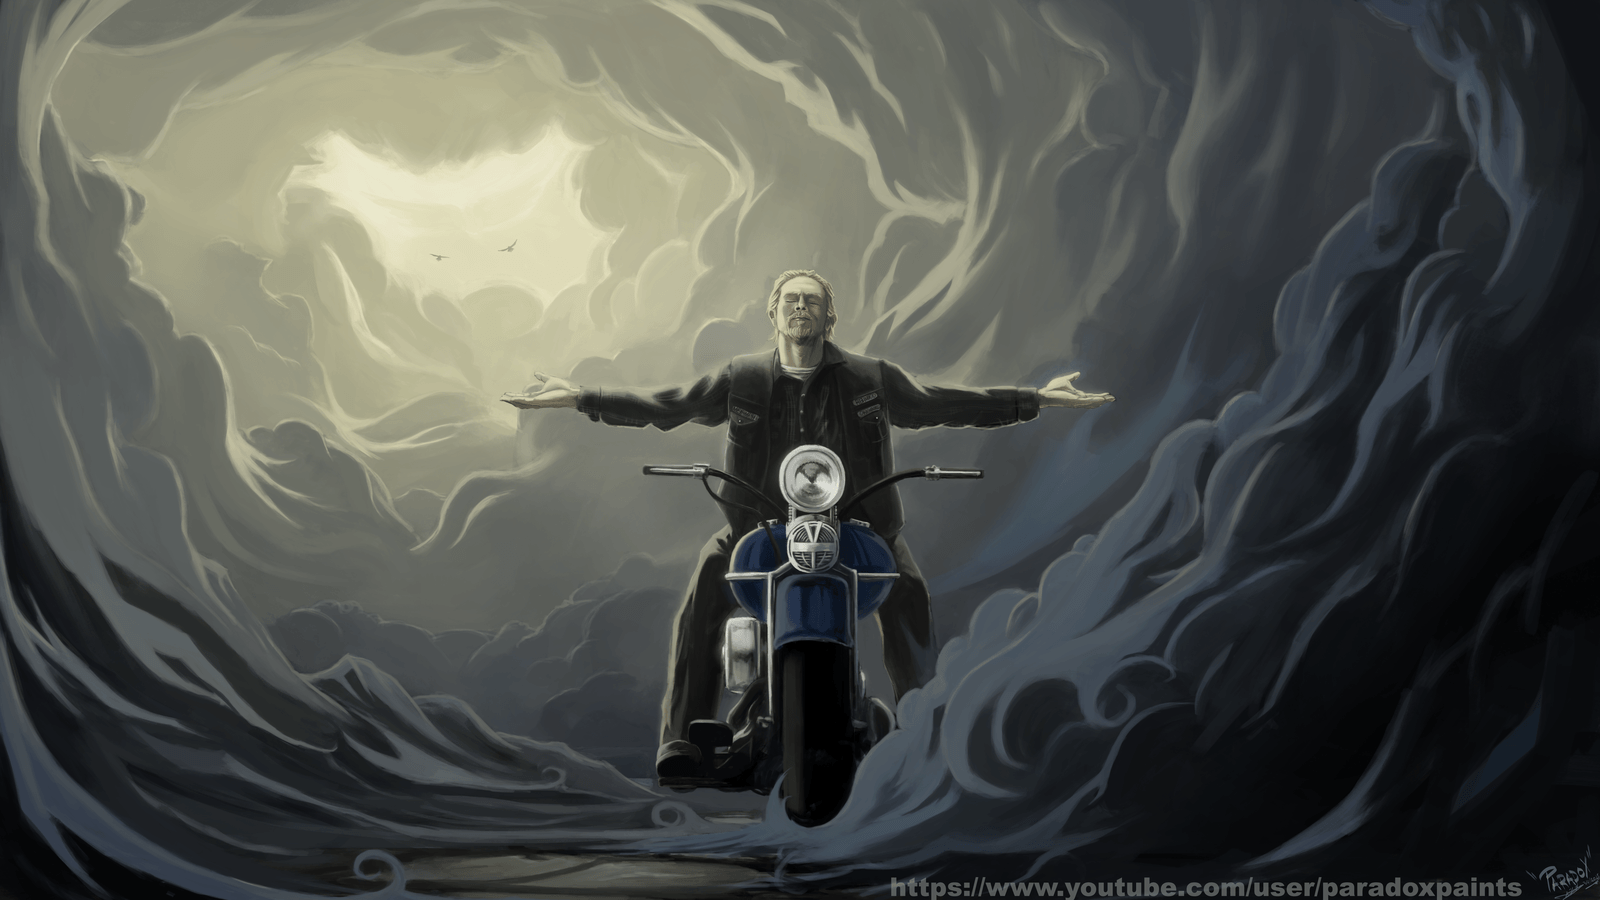 26 Best Free Jax Teller Wallpapers: Bikes On Sons Of Anarchy Wallpapers